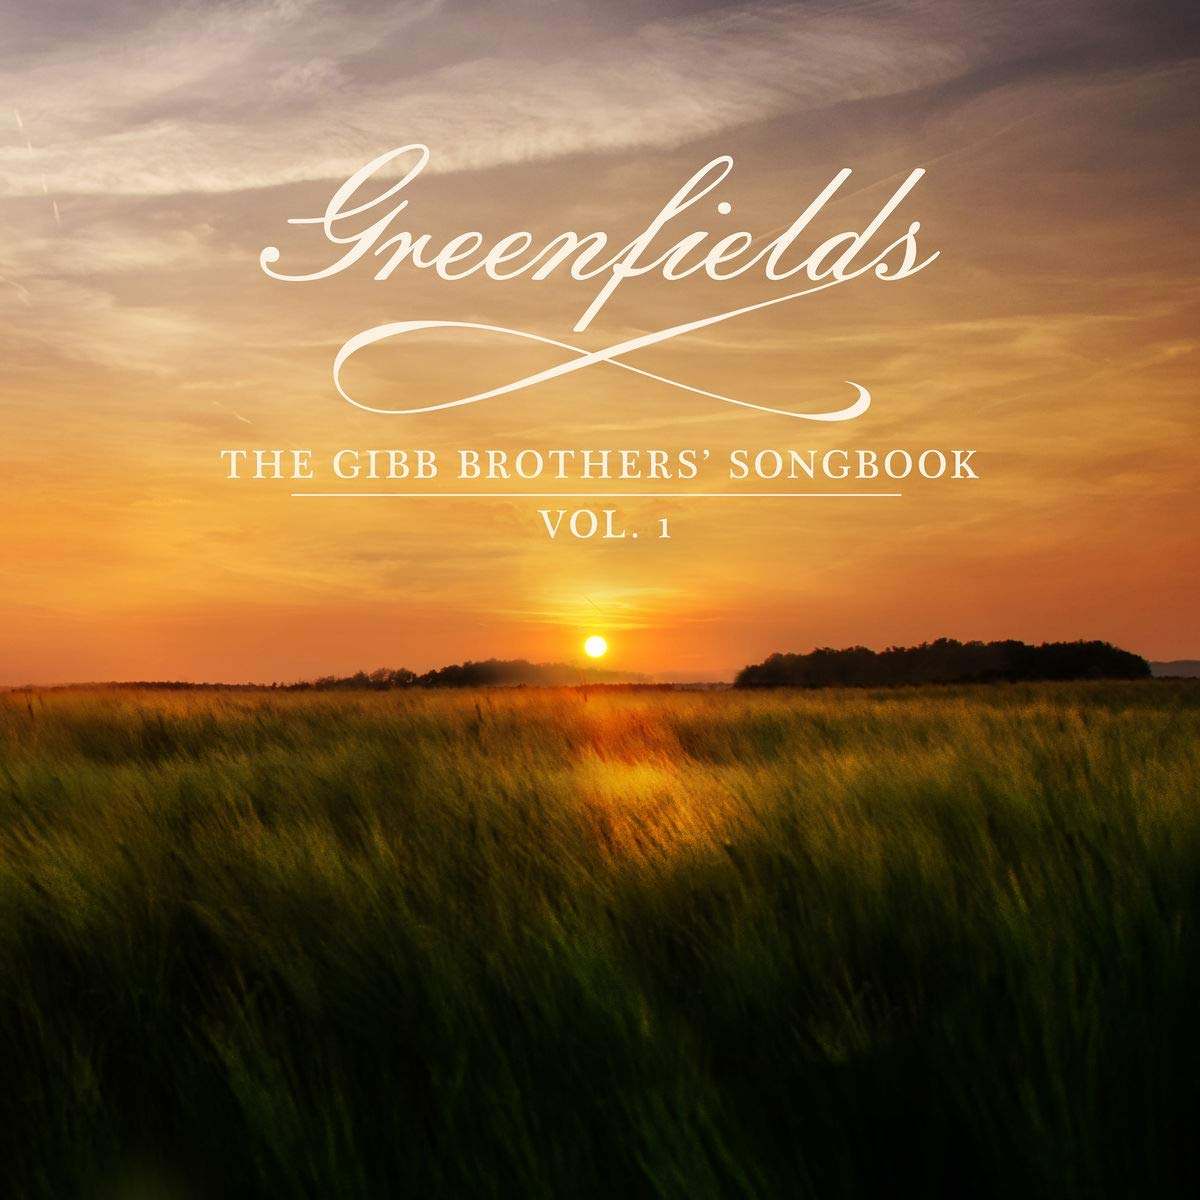 CD review - Greenfields: The Gibb Brothers Songbook, Vol. 1